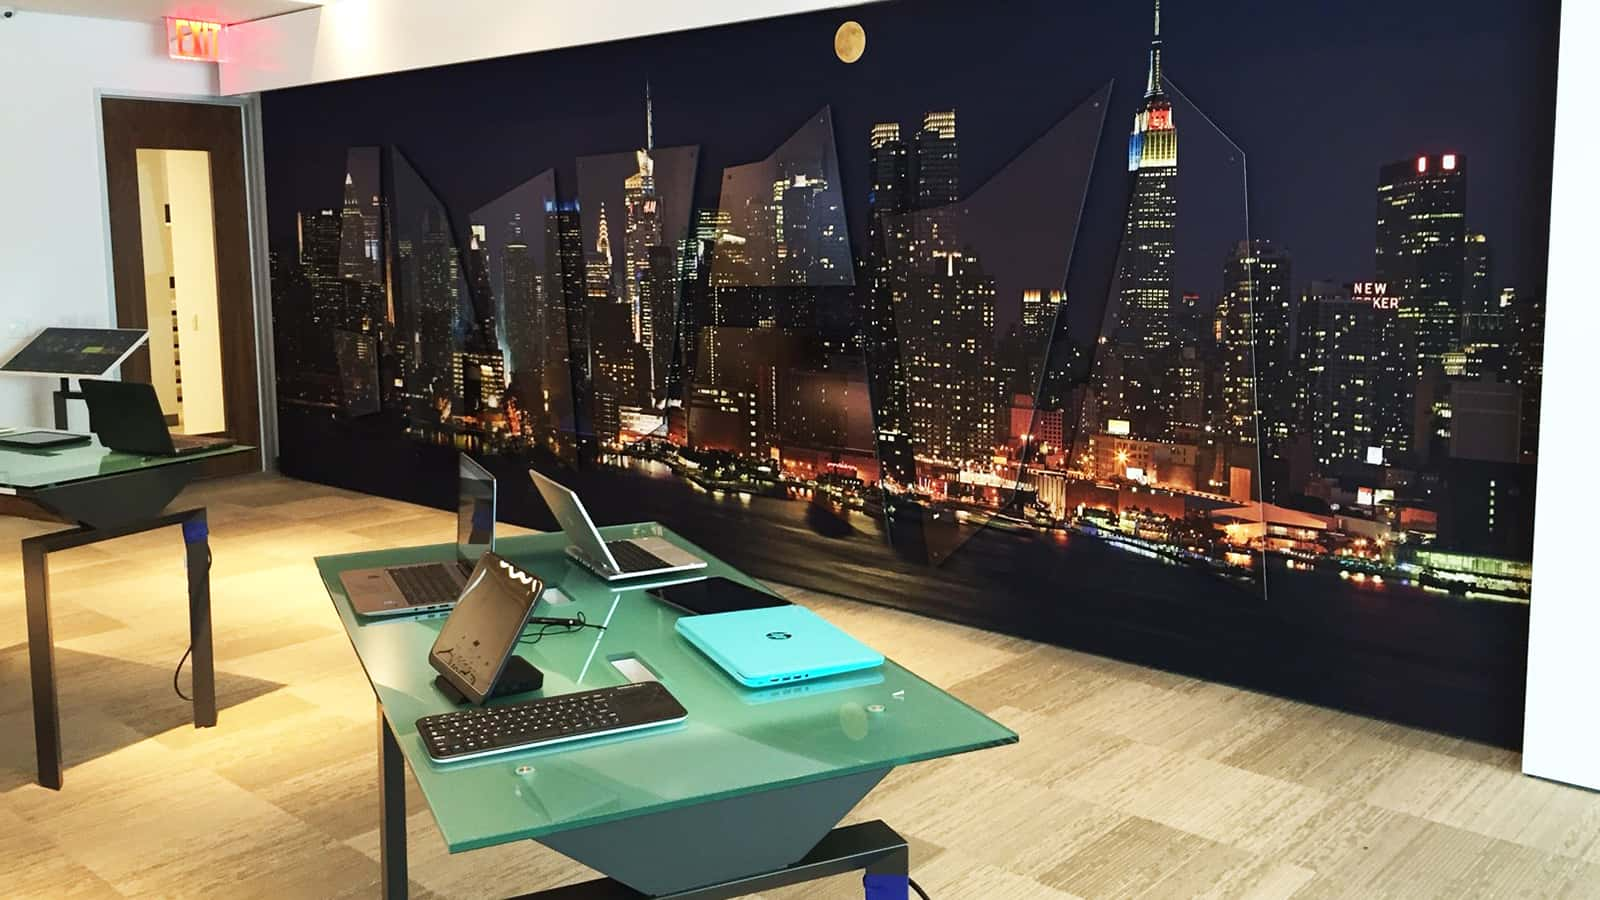 New York skyline wall relief at the HPE Customer Engagement Center in New York City.